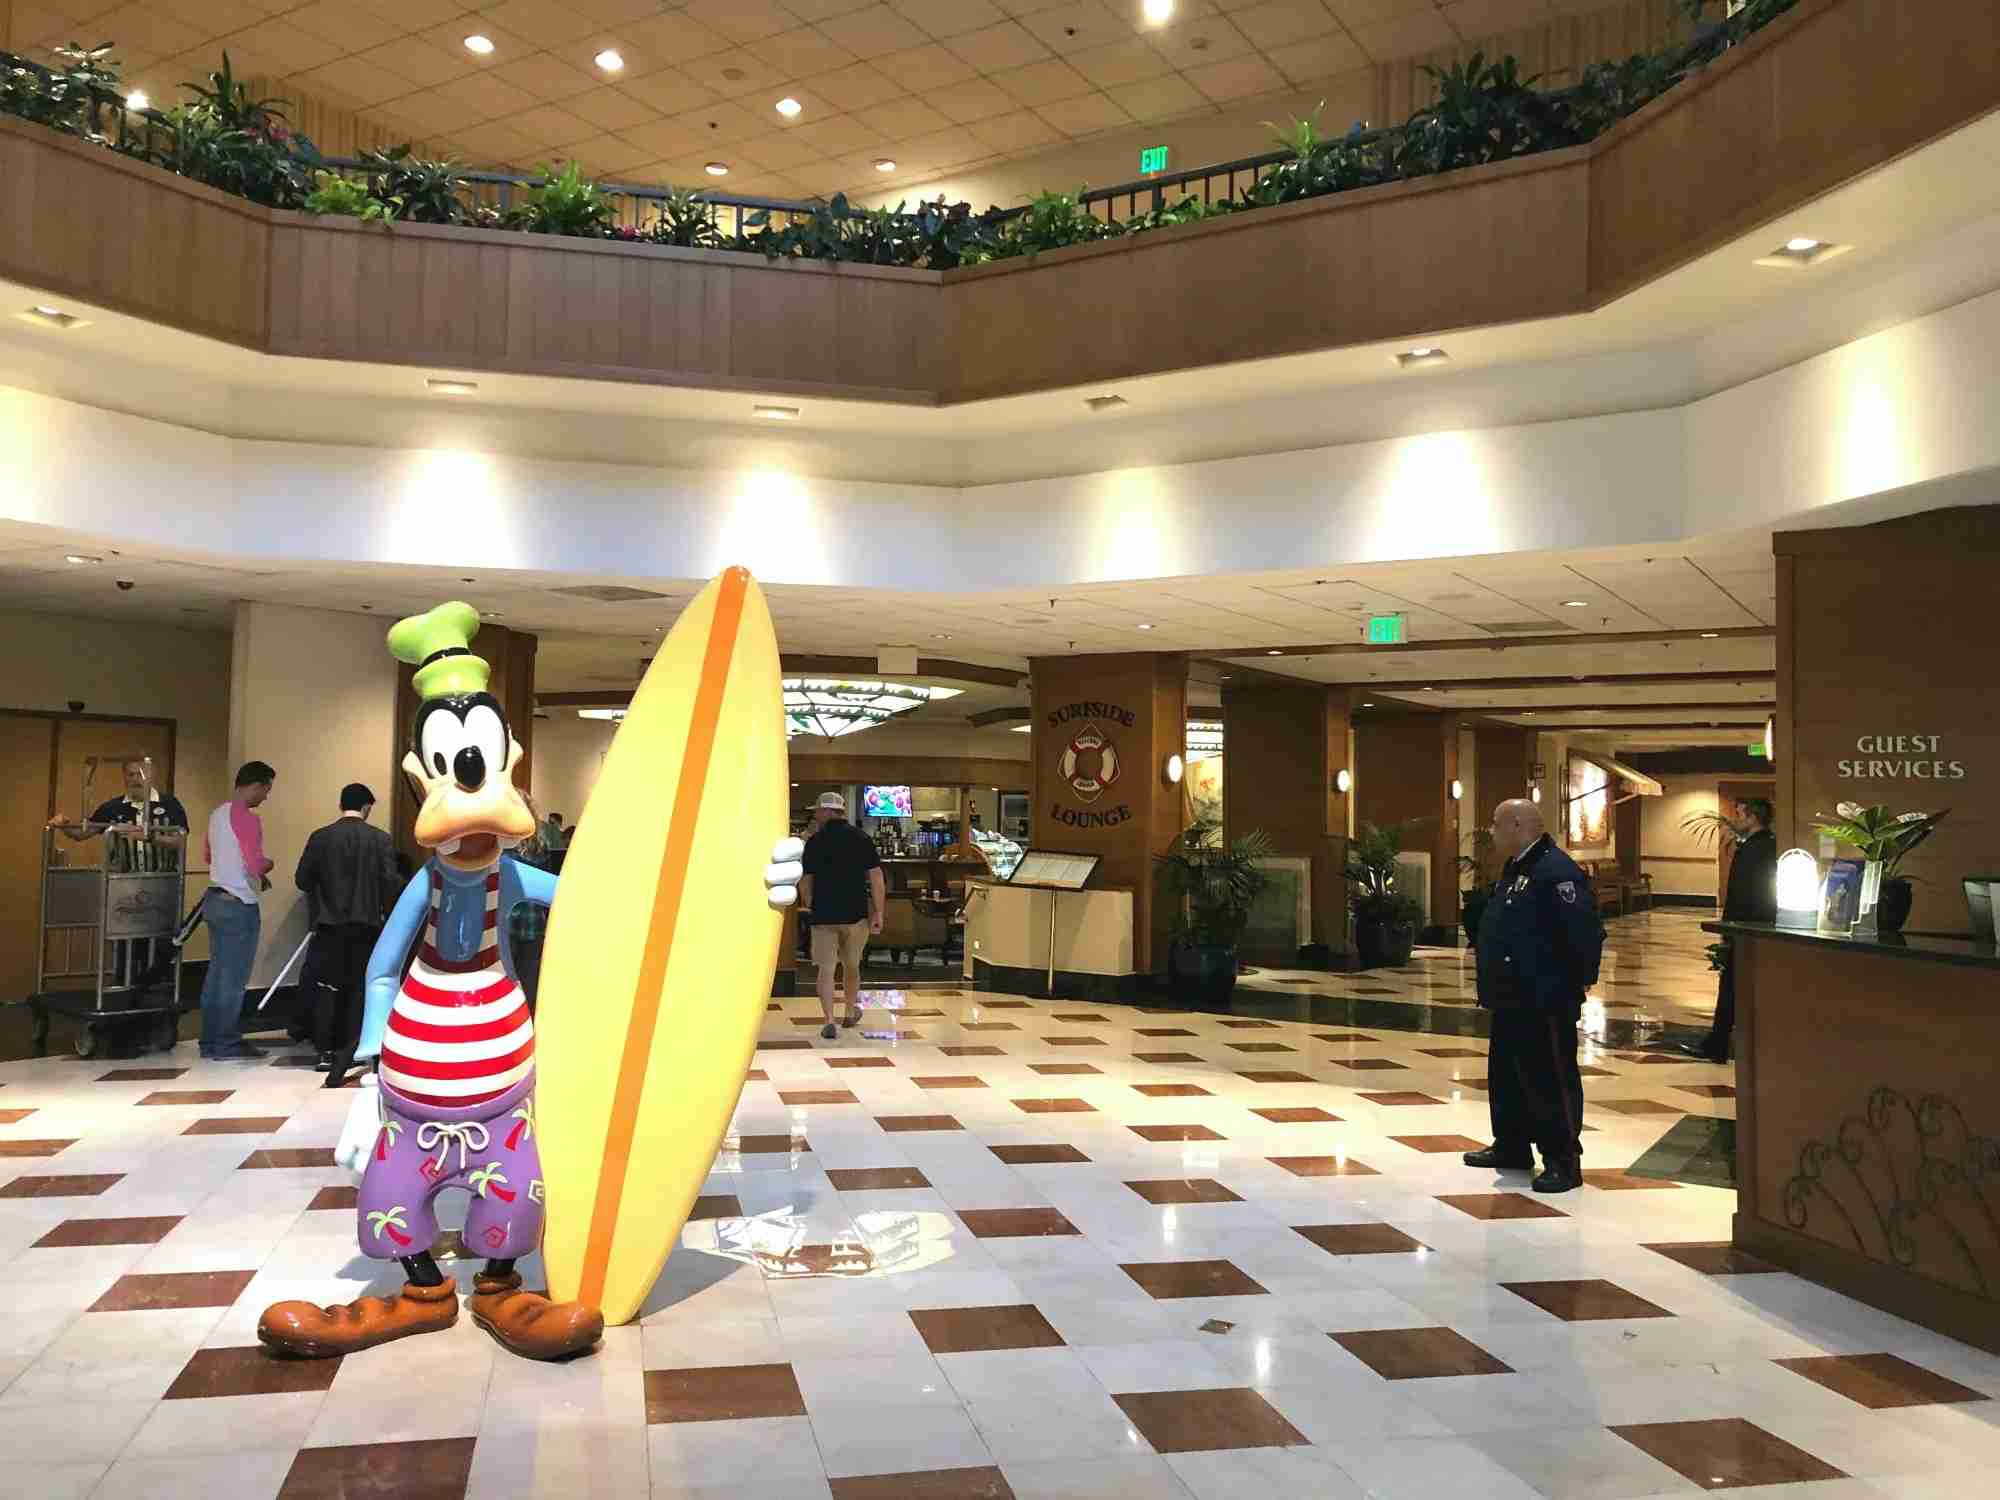 Goofy greets guests in the Paradise Pier Hotel Lobby. (Image by Leslie Harvey.)